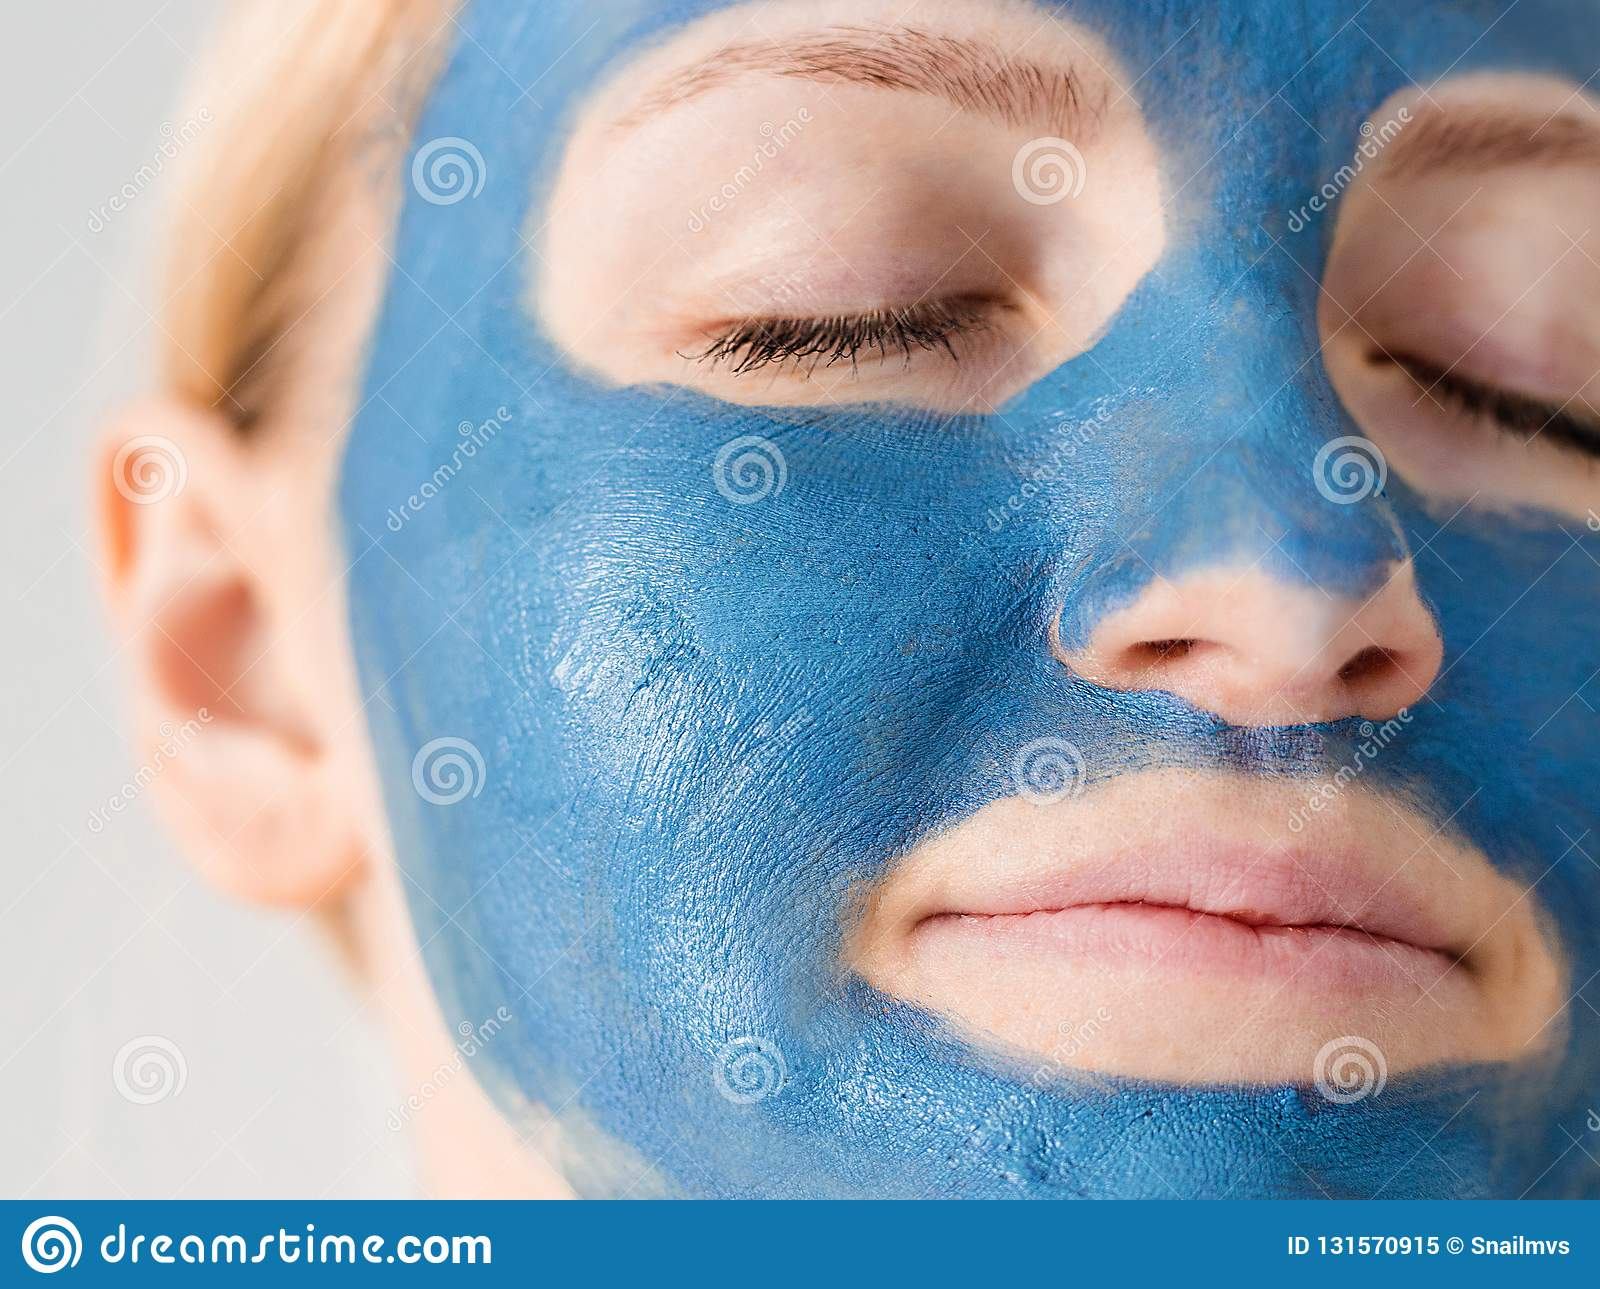 Skin care. Woman face with blue clay mud mask close up. Girl taking care of oily complexion. Beauty treatment.